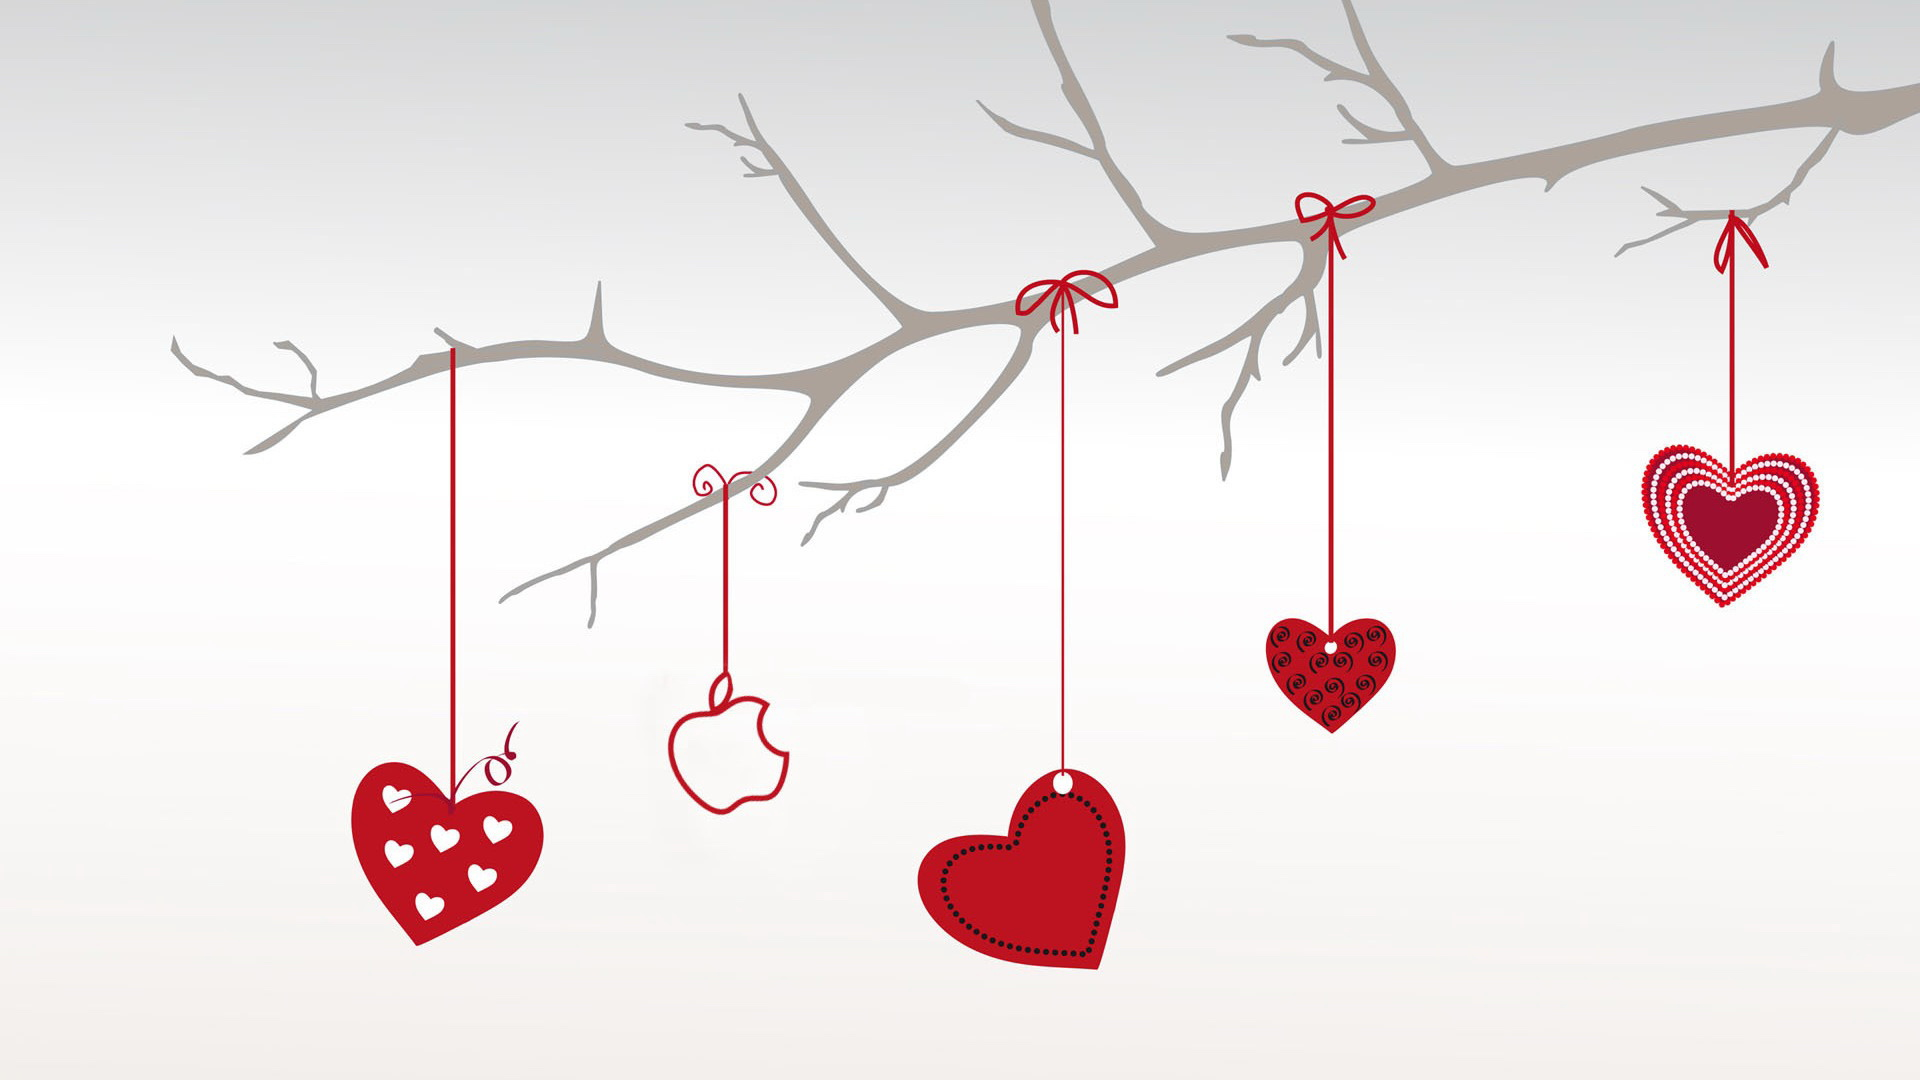 Hangings in Heart Shape and Red Color, Style is Simple and Clean